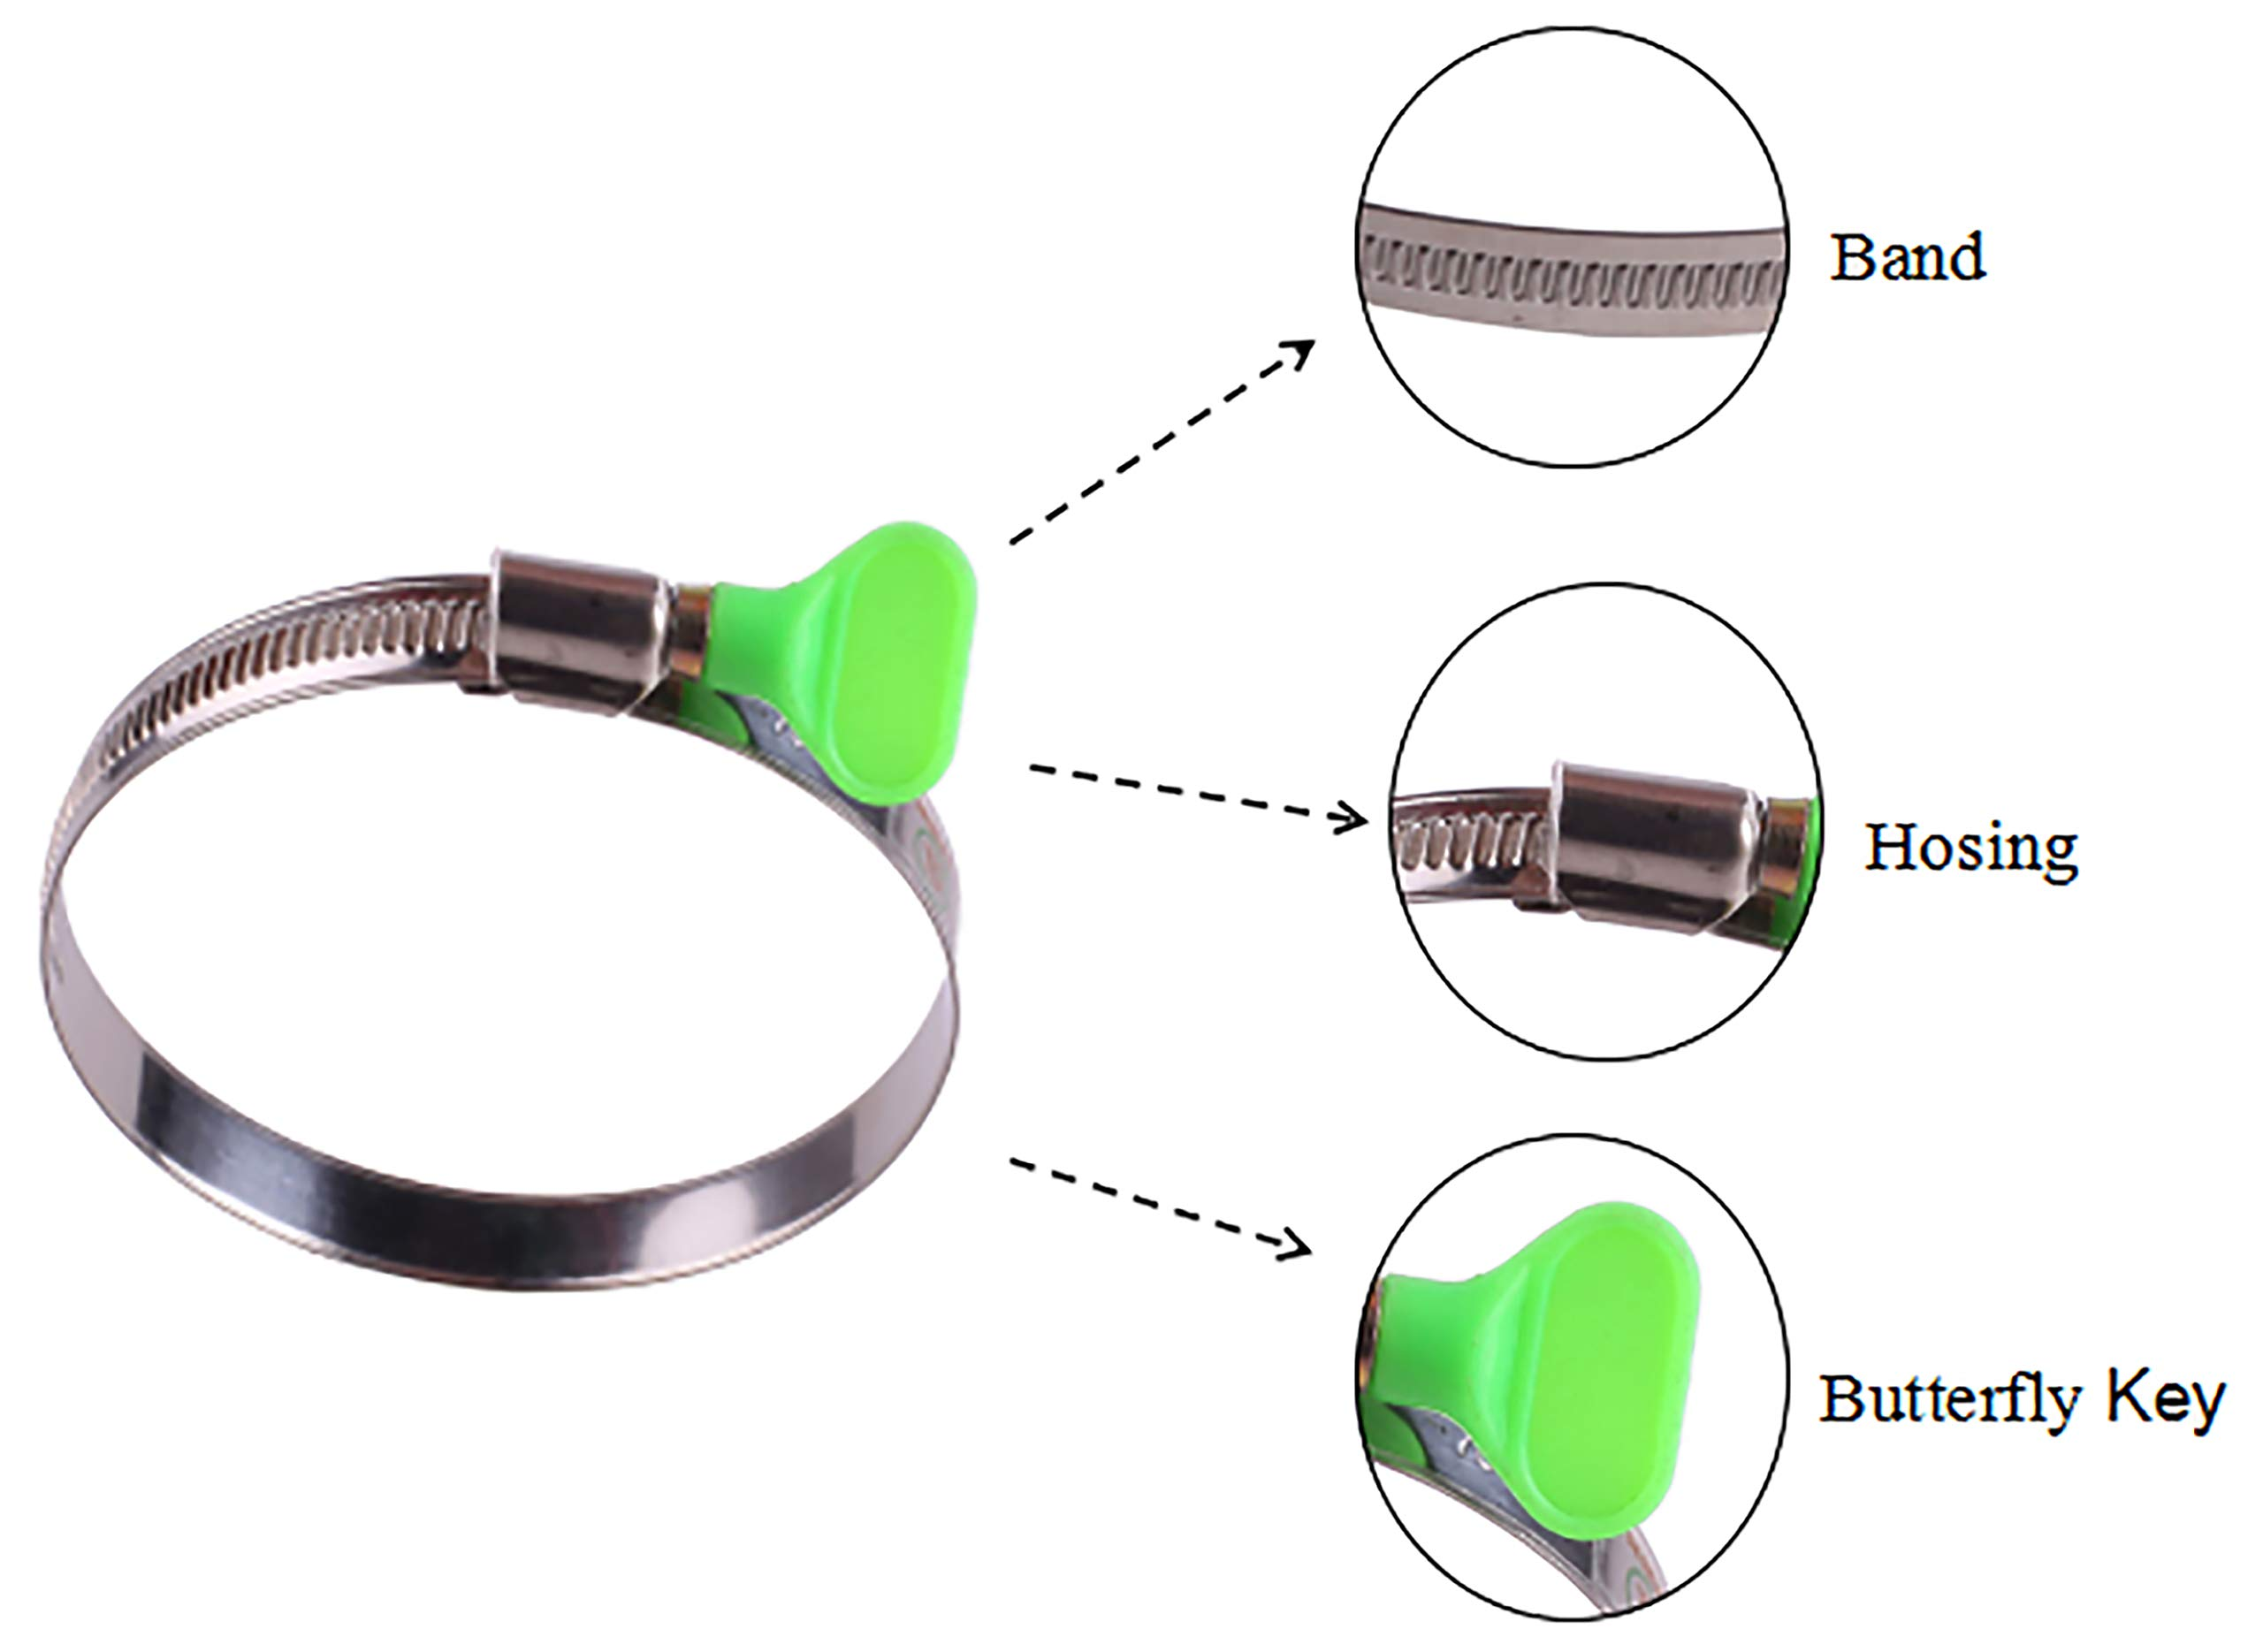 Duct Clamps Pipe Clamp Worm Gear Clamps Large Hose Clamps Pack of 8 GLIDESTORE 6-Inch Stainless Steel Hose Clamps Dryer Vent Hose Clamp